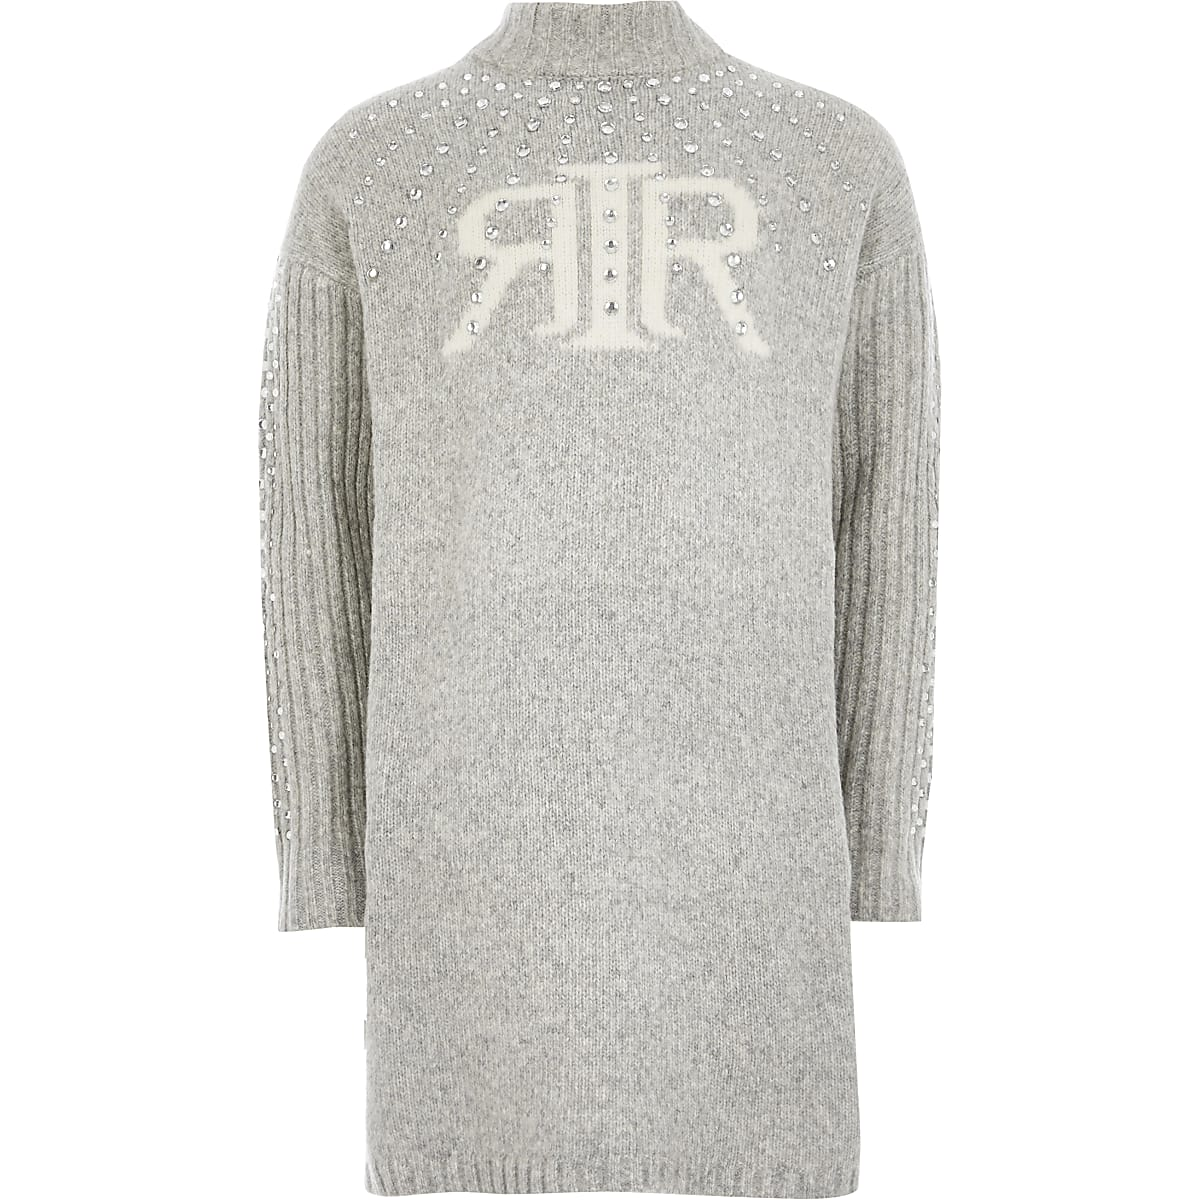 Girls grey RI embellished jumper dress